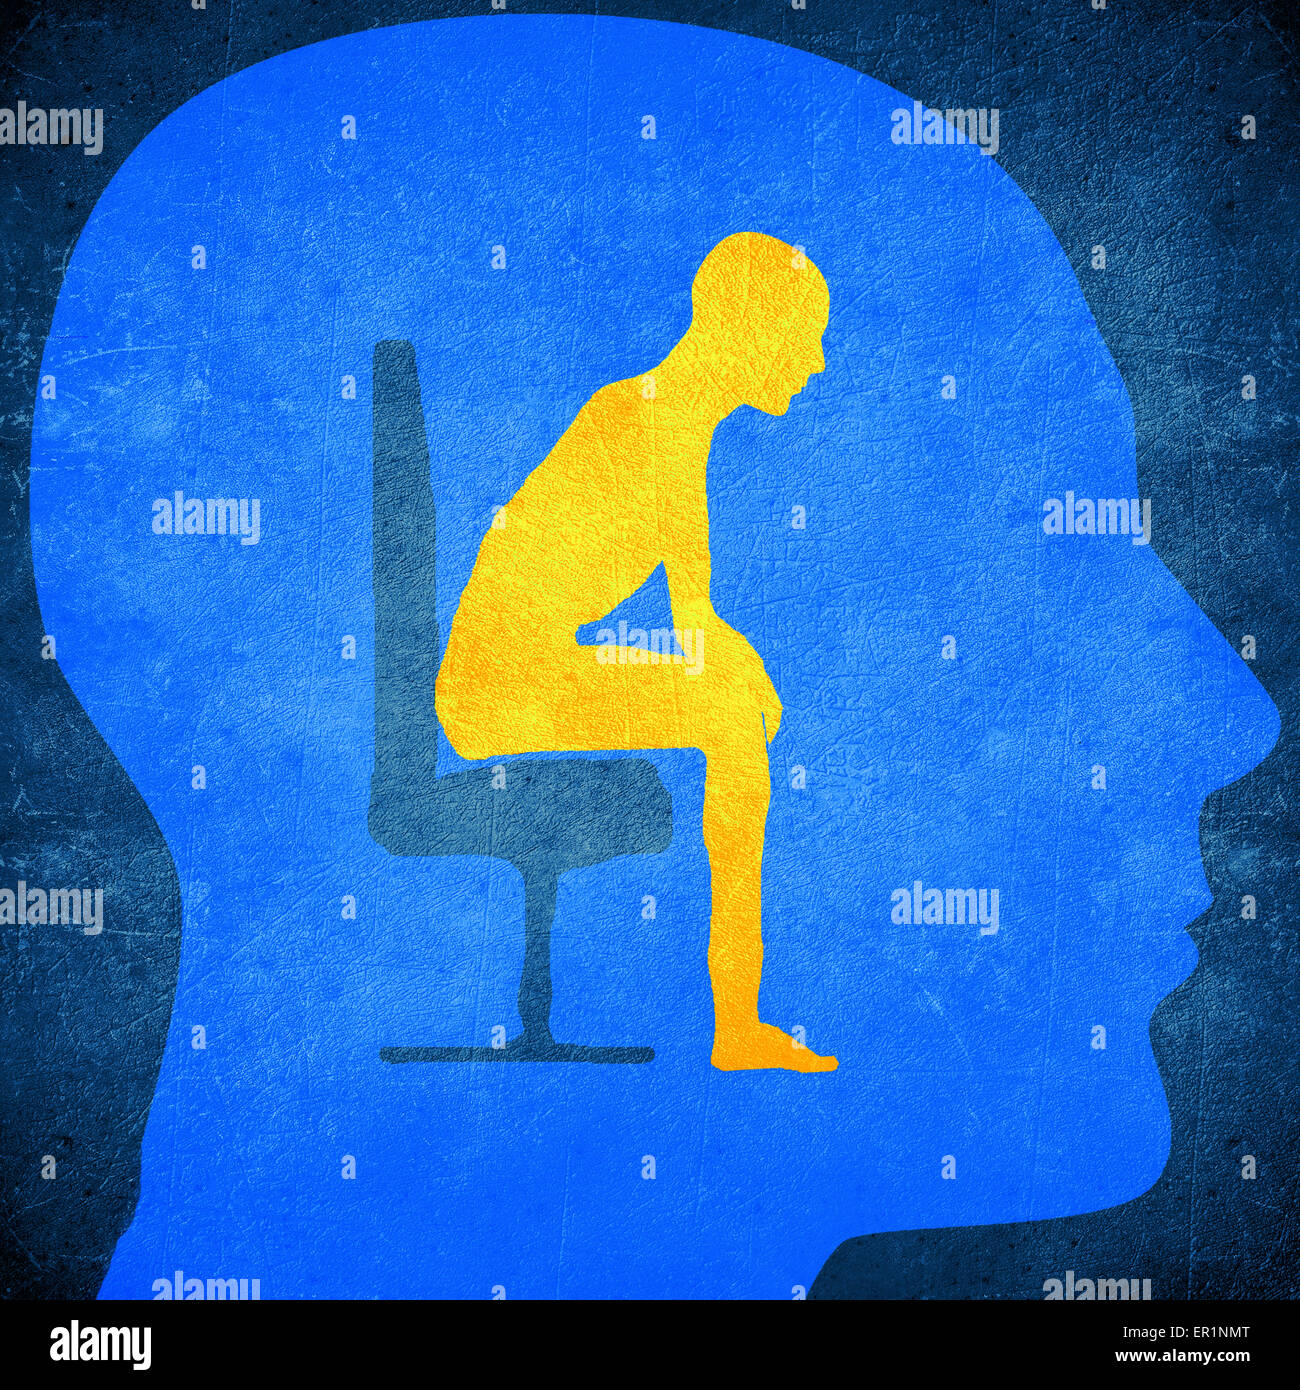 blue human head silhouette with a man sitting inside psychology concept - Stock Image